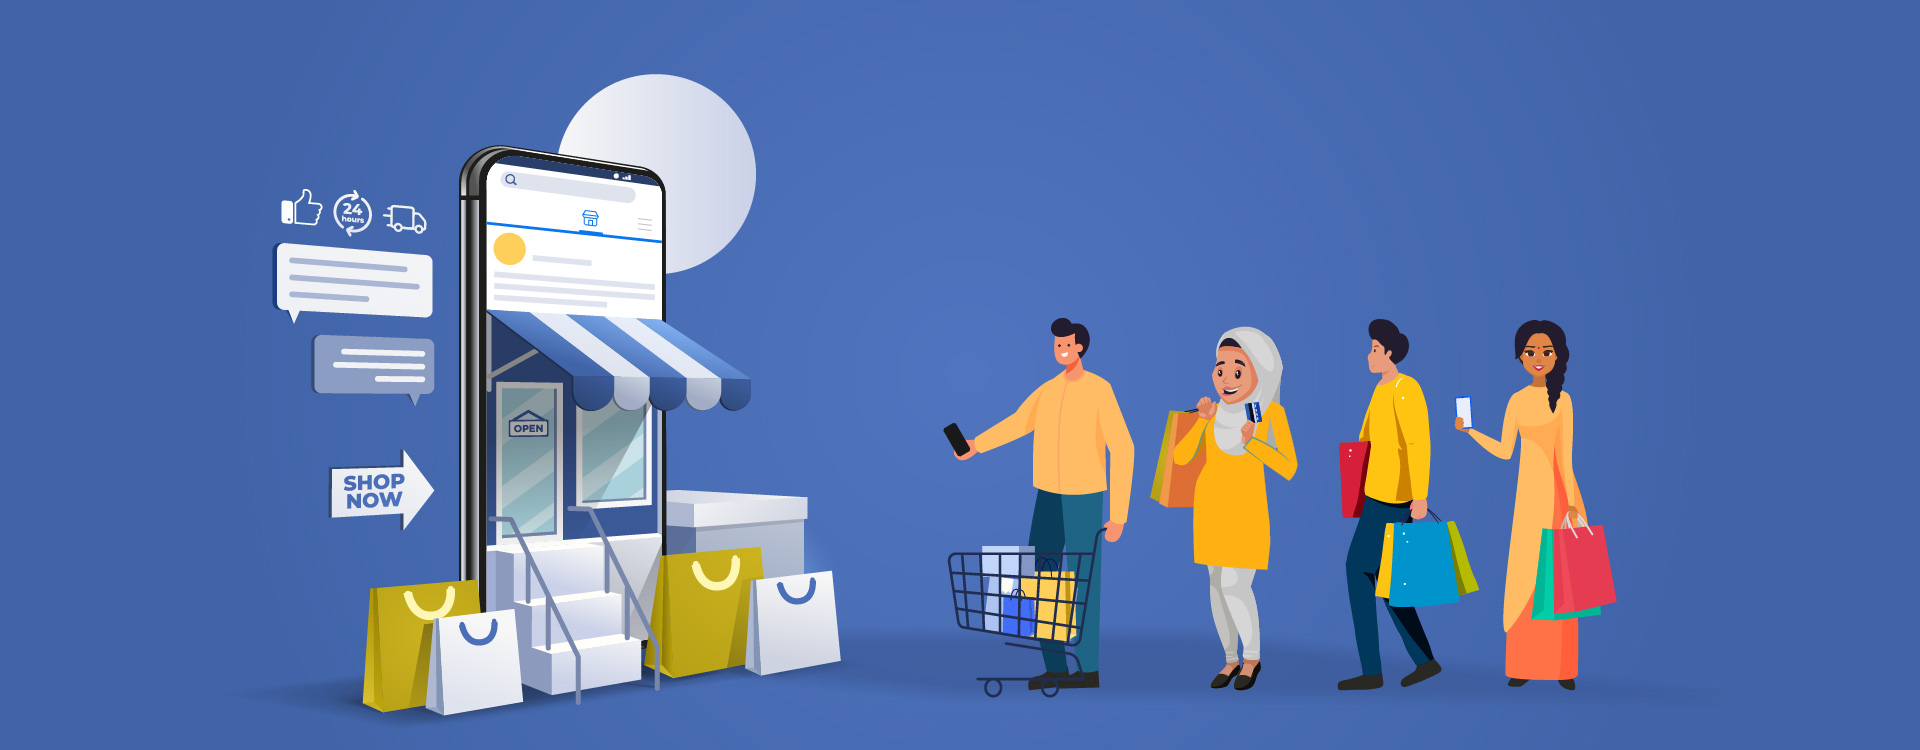 DealShare is promoting community group model in India to attract online shoppers from smaller cities and towns in India.